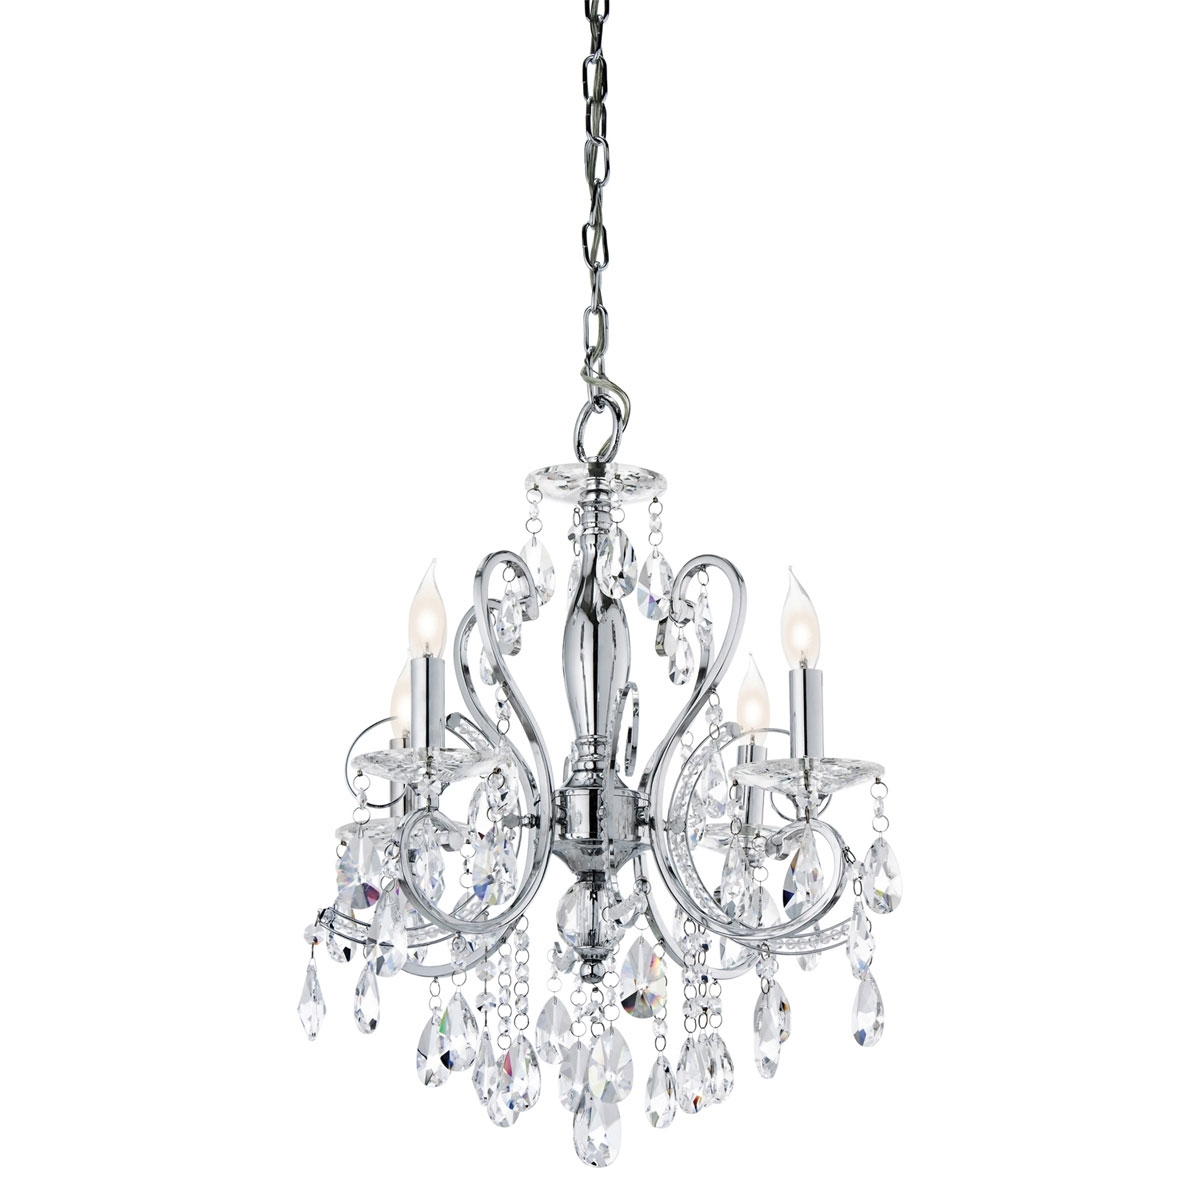 Ultimate Mini Crystal Chandeliers About Modern Home Interior Design In Famous Small Chandeliers (Gallery 8 of 20)